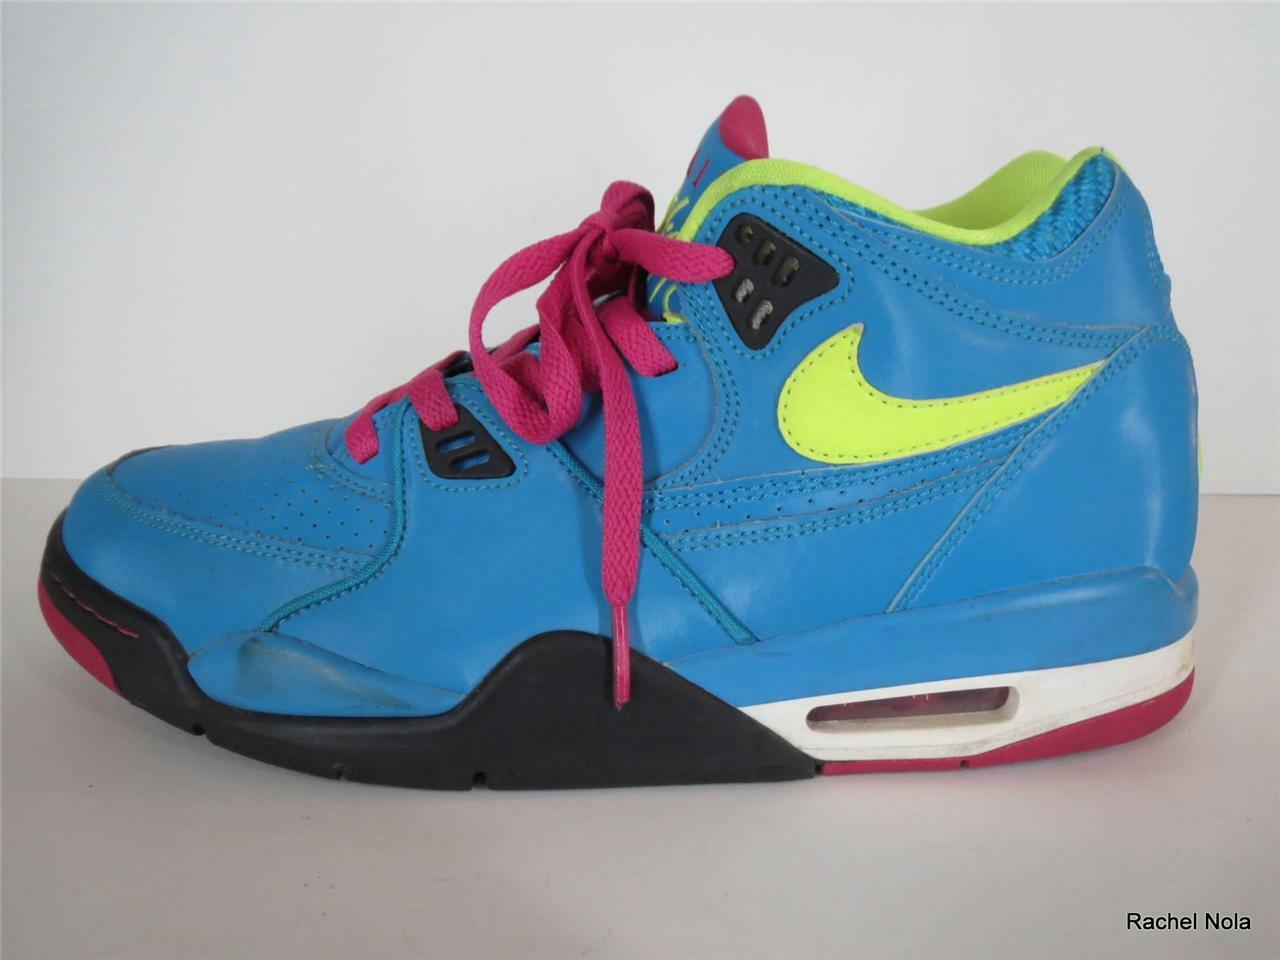 Nike Sneakers Mens Size 9.5 Air Flight Retro Retro Retro colorful Neon bluee Pink High Top 94b6af